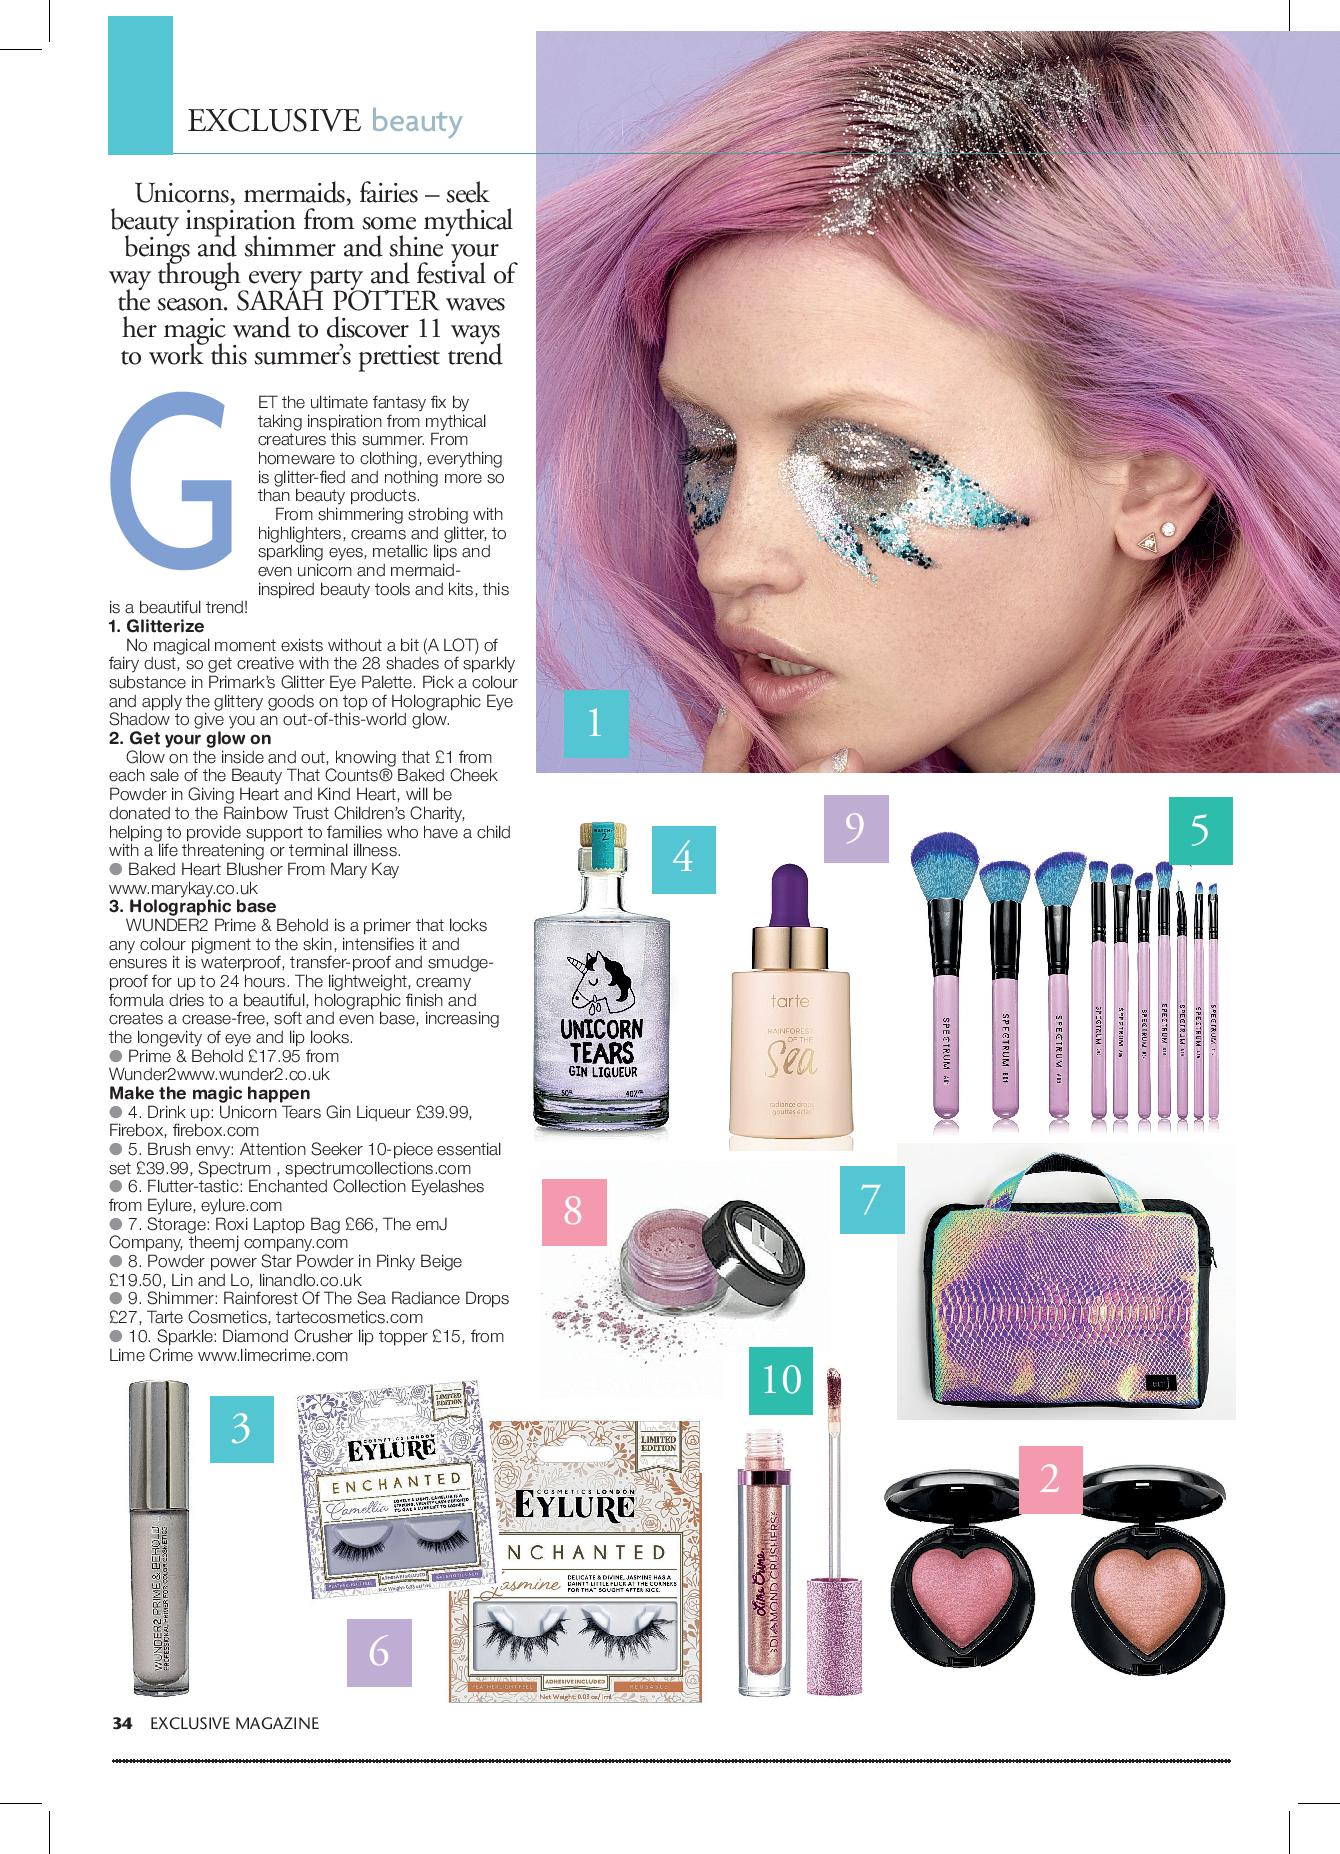 The Enchanted Beauty Trend | Exclusive Magazine Article